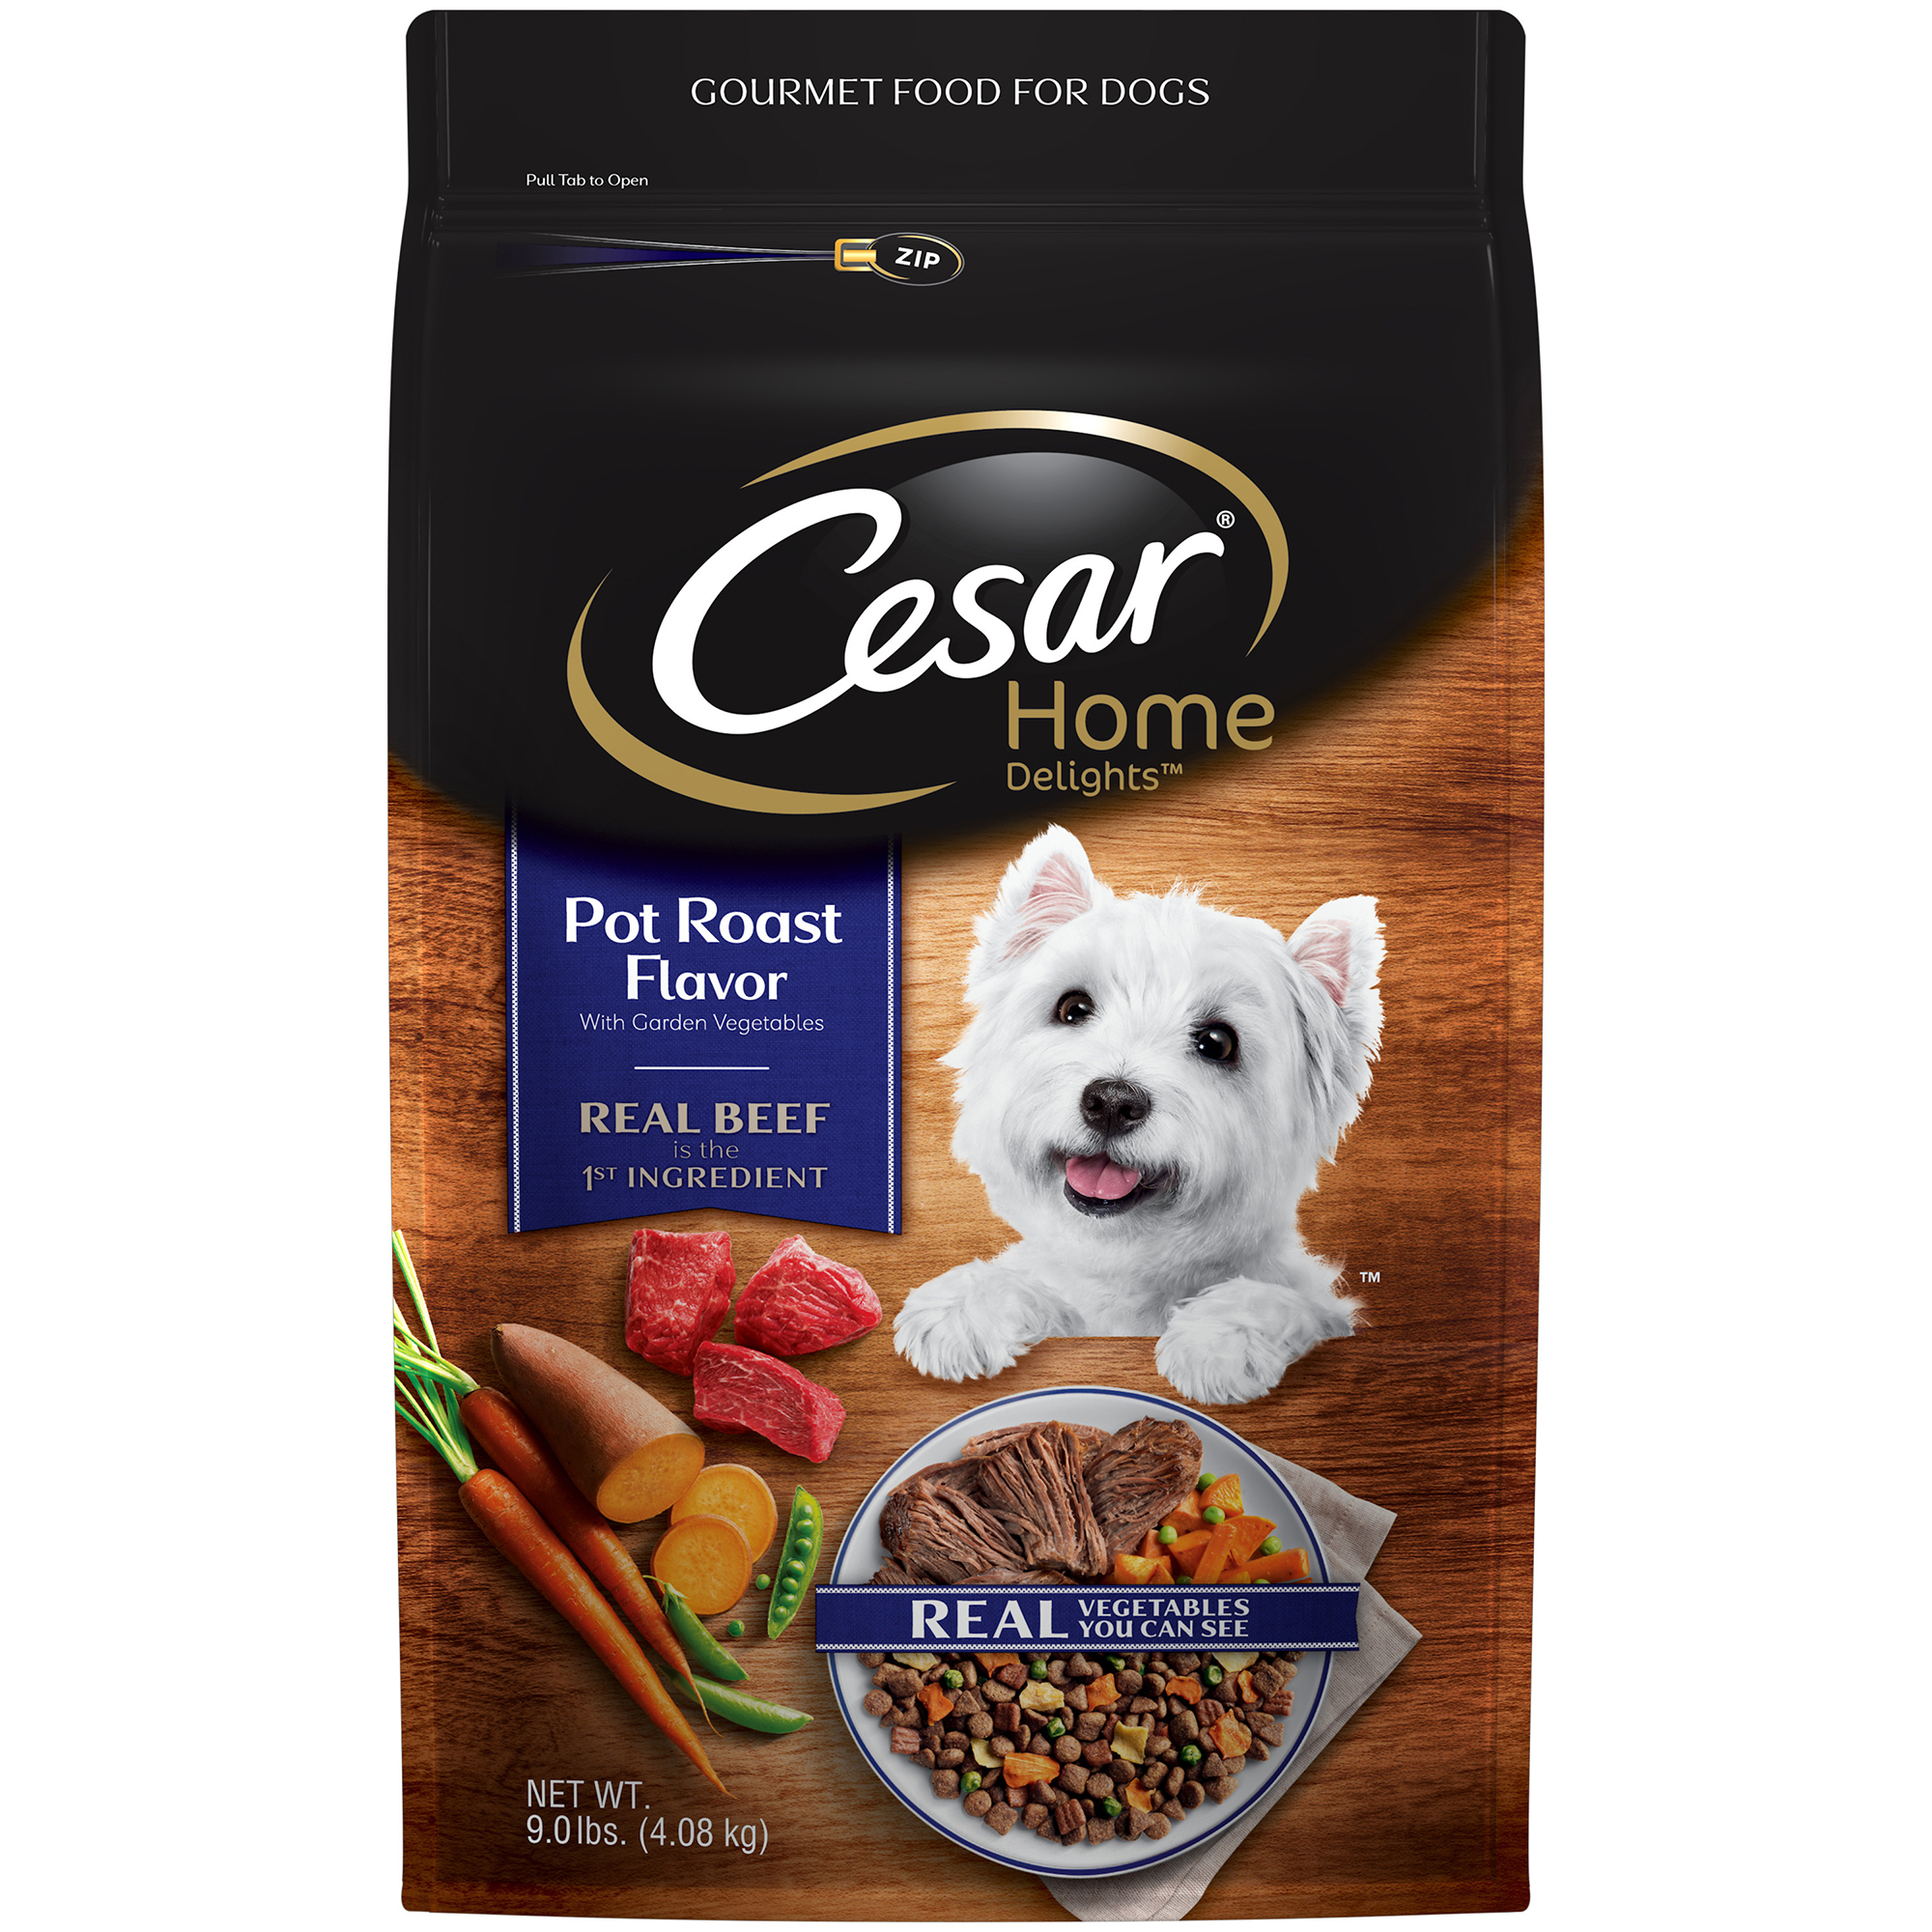 Cesar Home Delights Dry Dog Food Pot Roast Flavor with Garden Vegetables, 9 lb. Bag